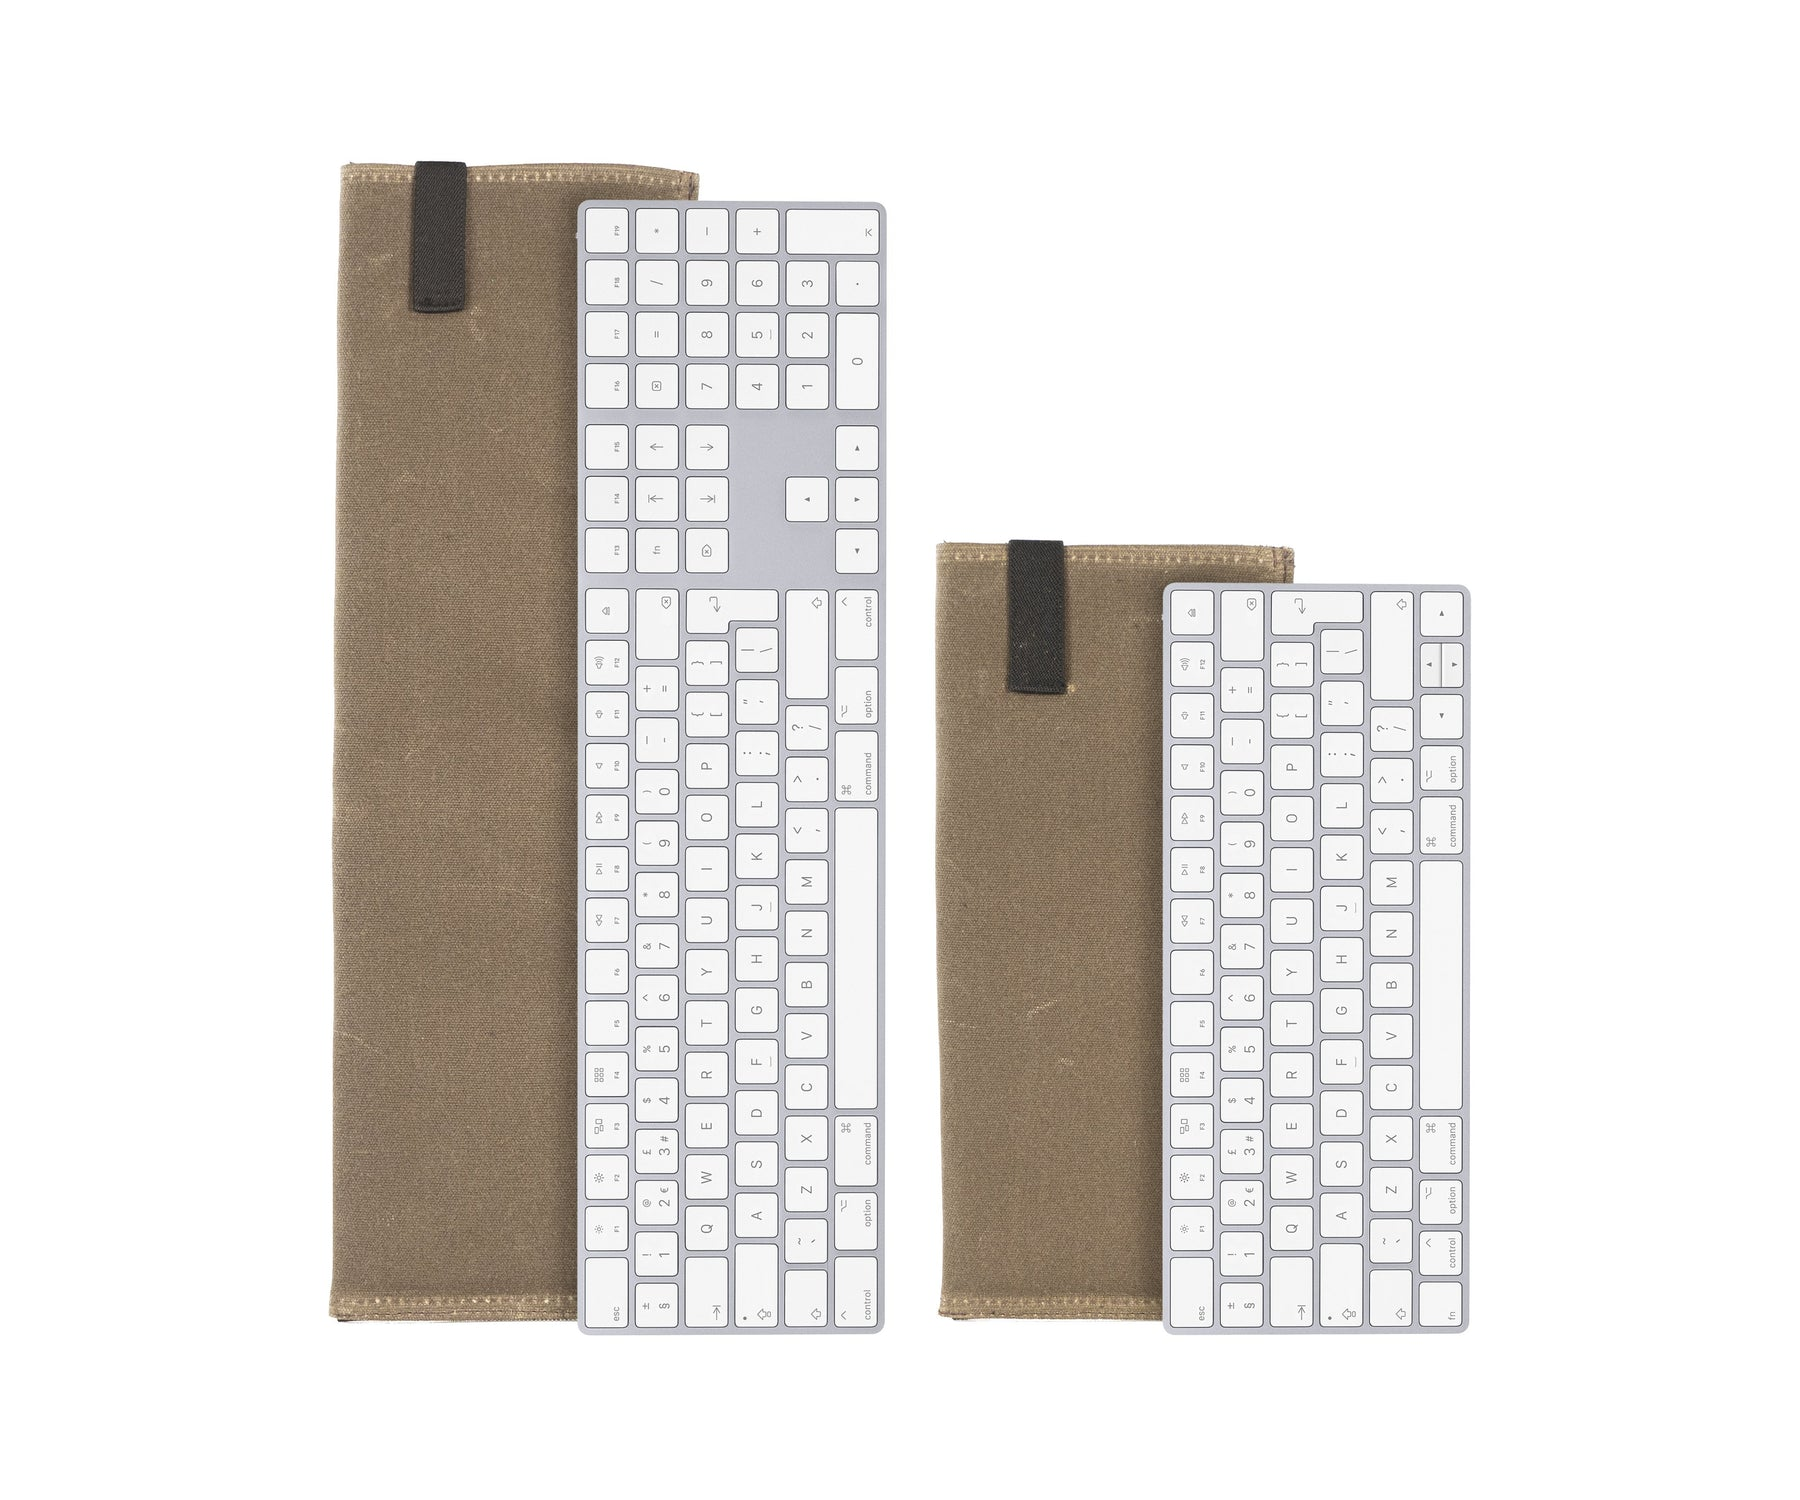 WaterField Issues Protective Dash Sleeve for Magic Keyboard and Trackpad Image